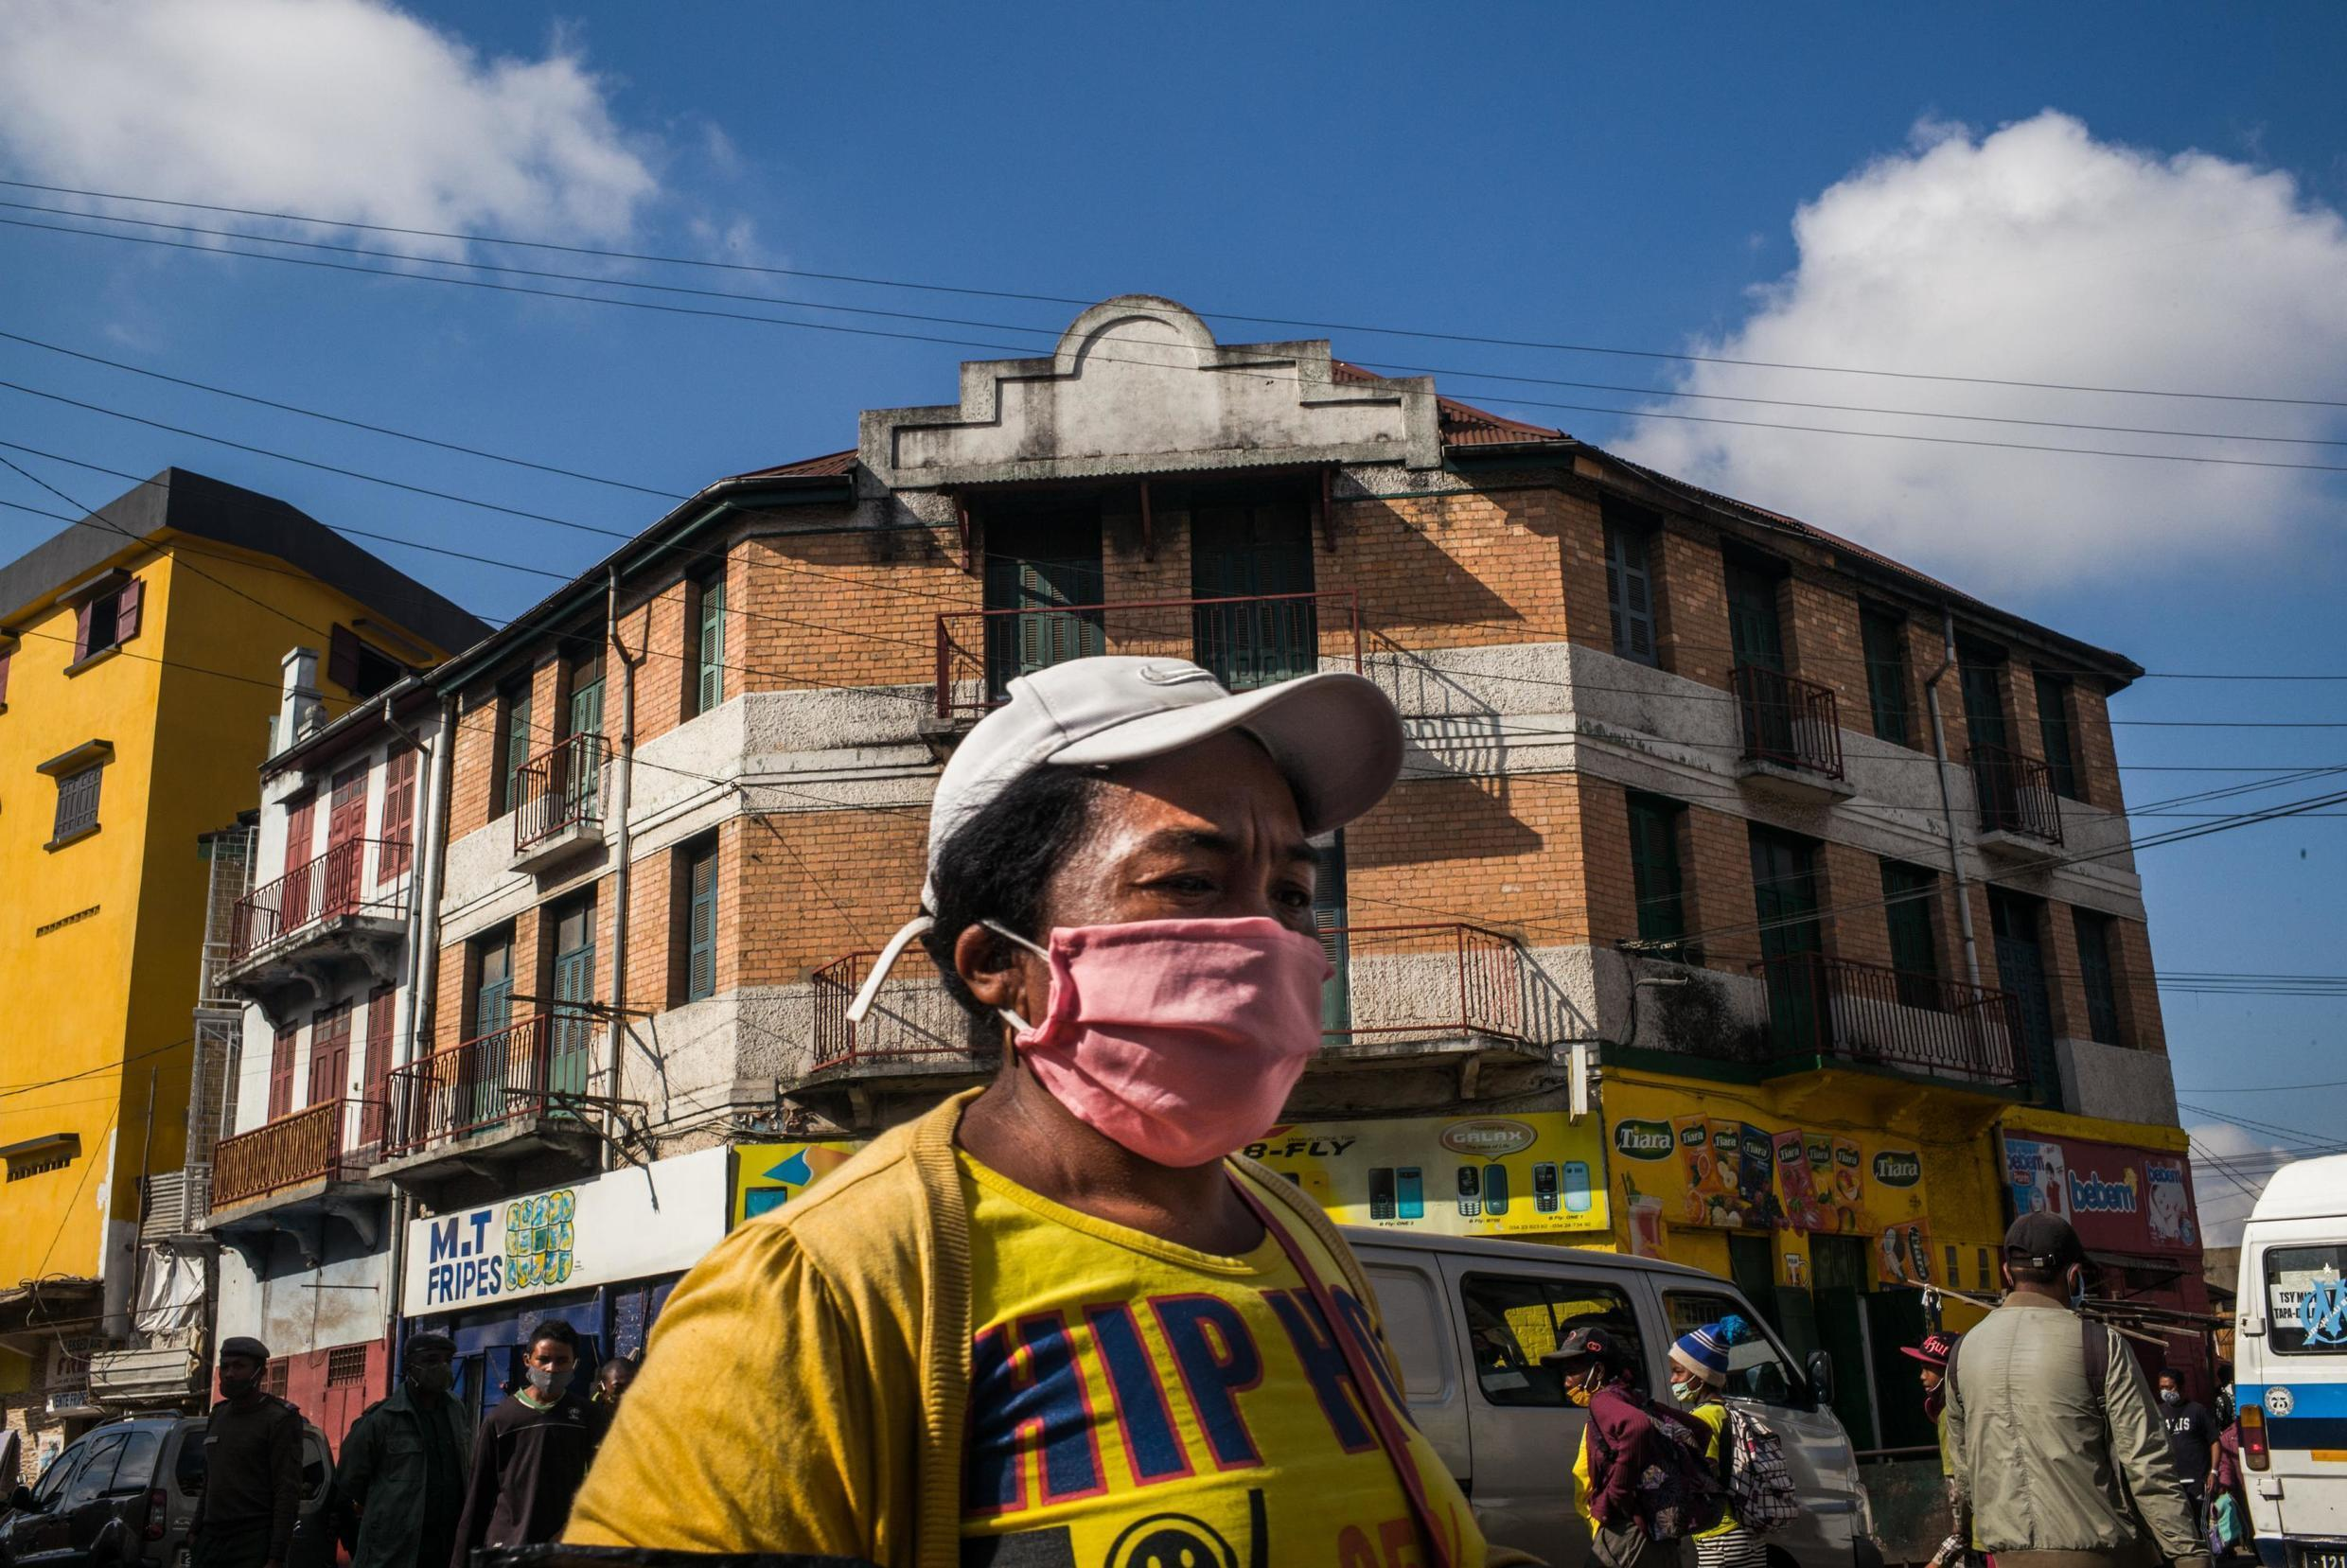 On the streets of Antananarivo in Madagascar, people are wearing masks due to Covid-19 that has hit the island.